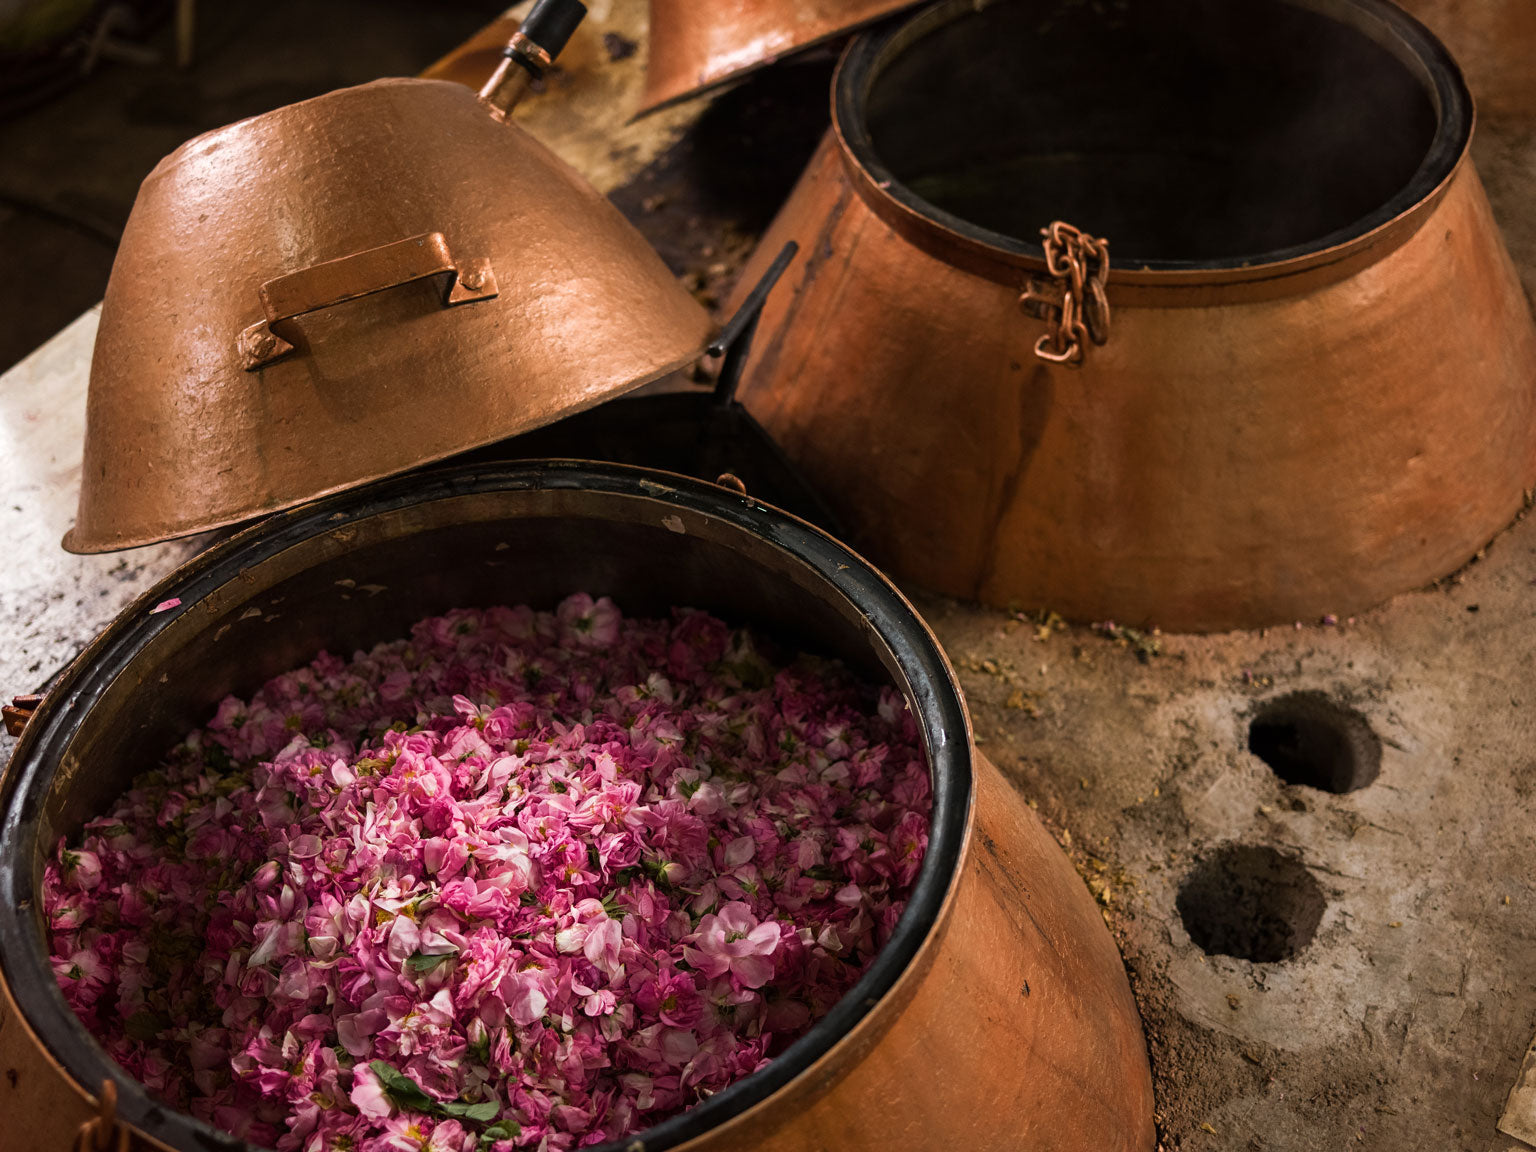 Iranian Rose Water Distillation In Copper Pots | Stories + Objects Lifestyle Travel Images